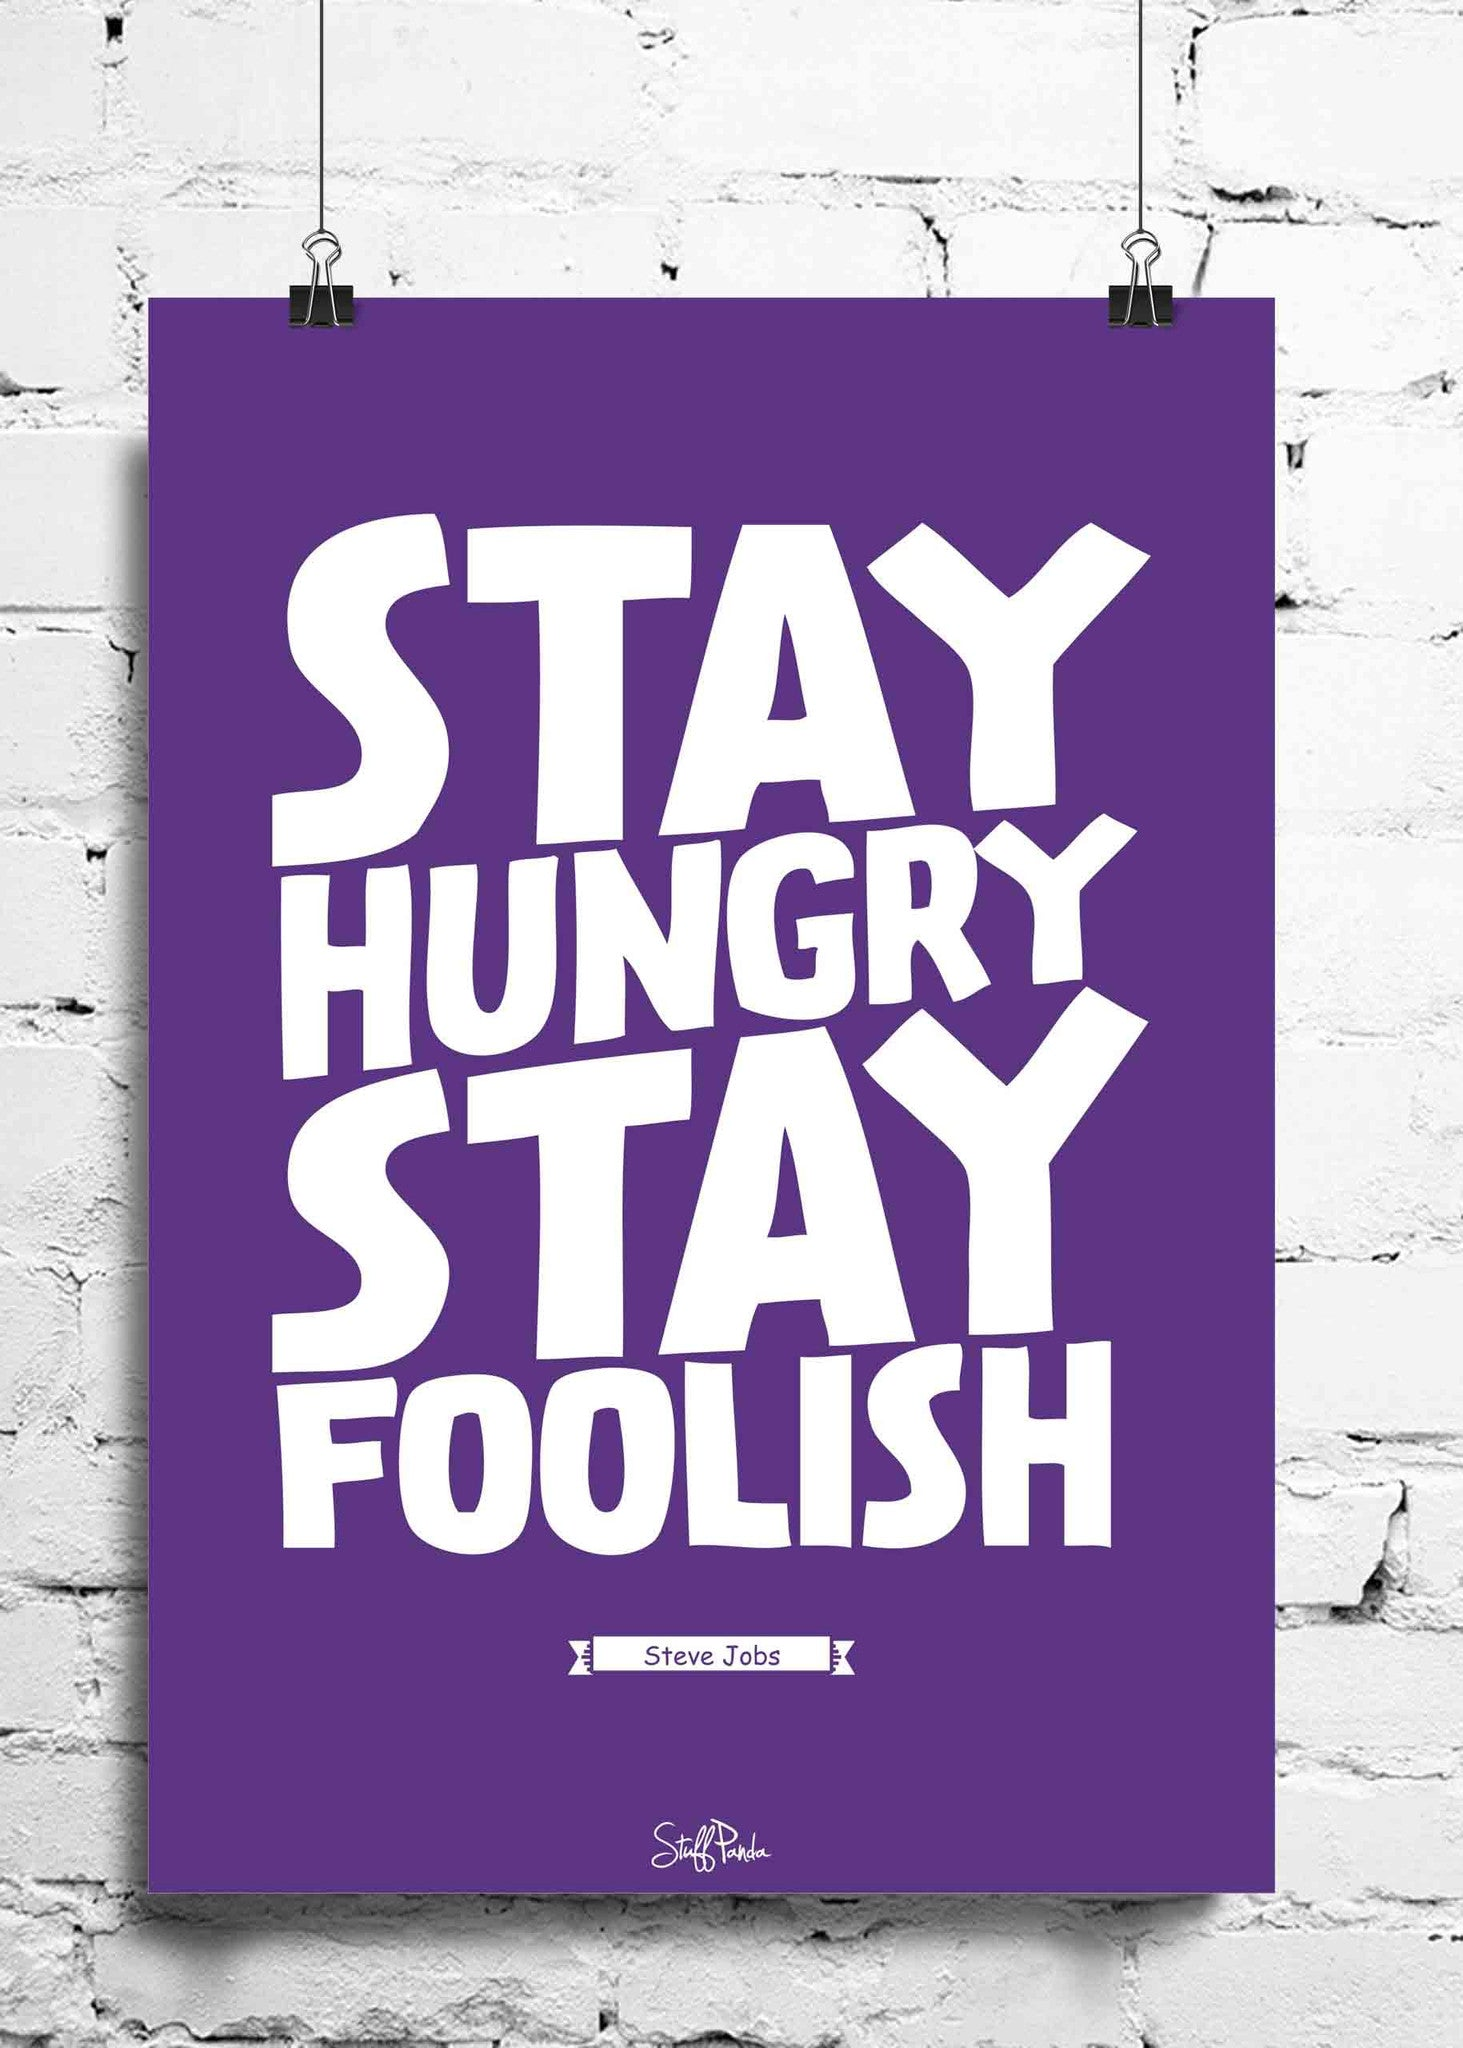 Cool Funky Steve jobs Quote Stay hungry wall posters, art prints, stickers decals - stuffpanda - 1